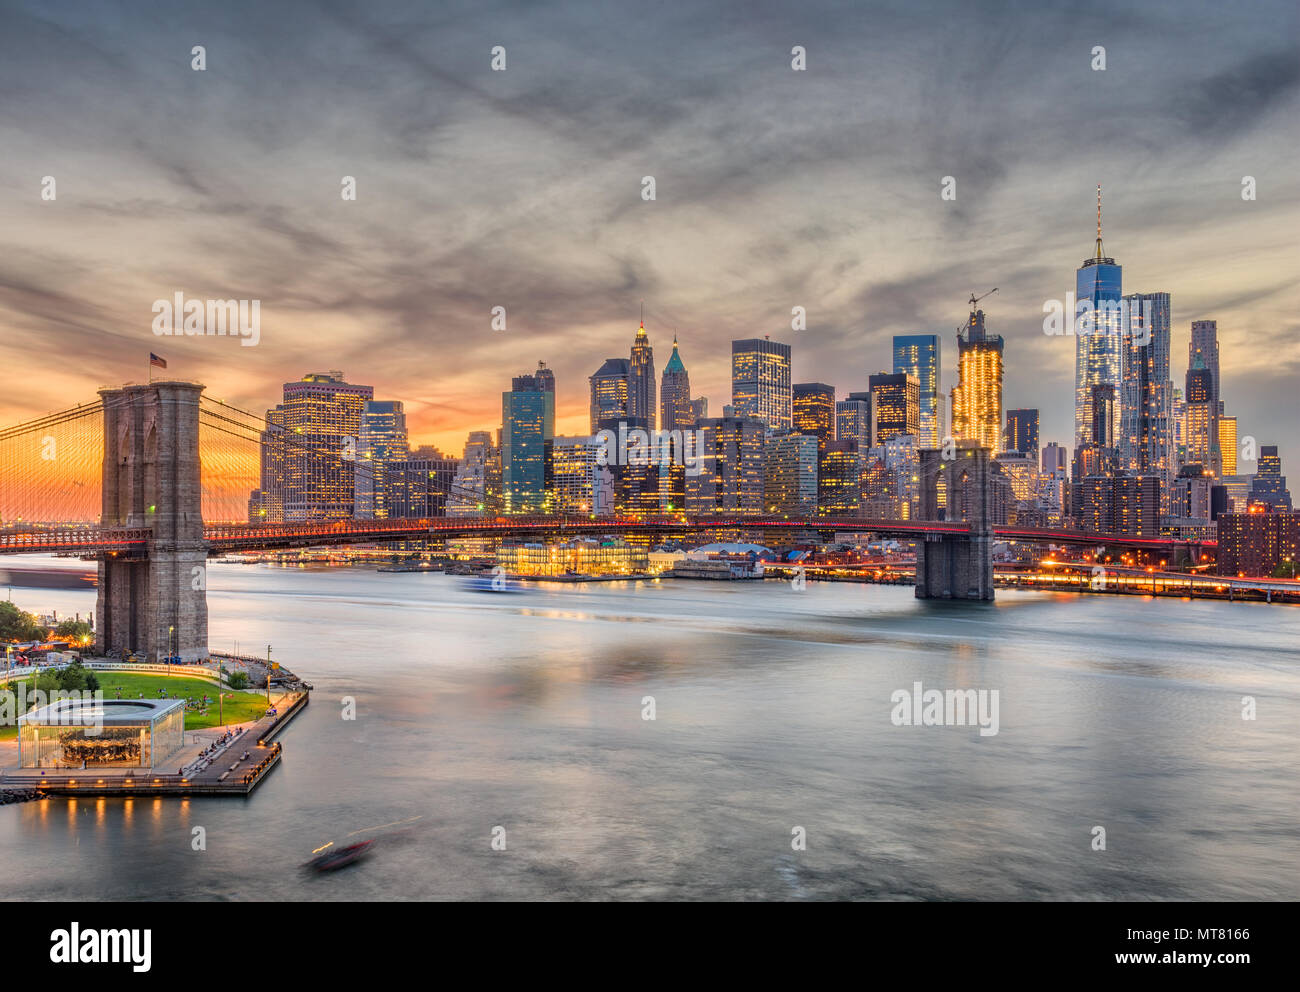 New York, New York, USA skyline of Manhattan over the East River with the Brooklyn Bridge after sunset. - Stock Image